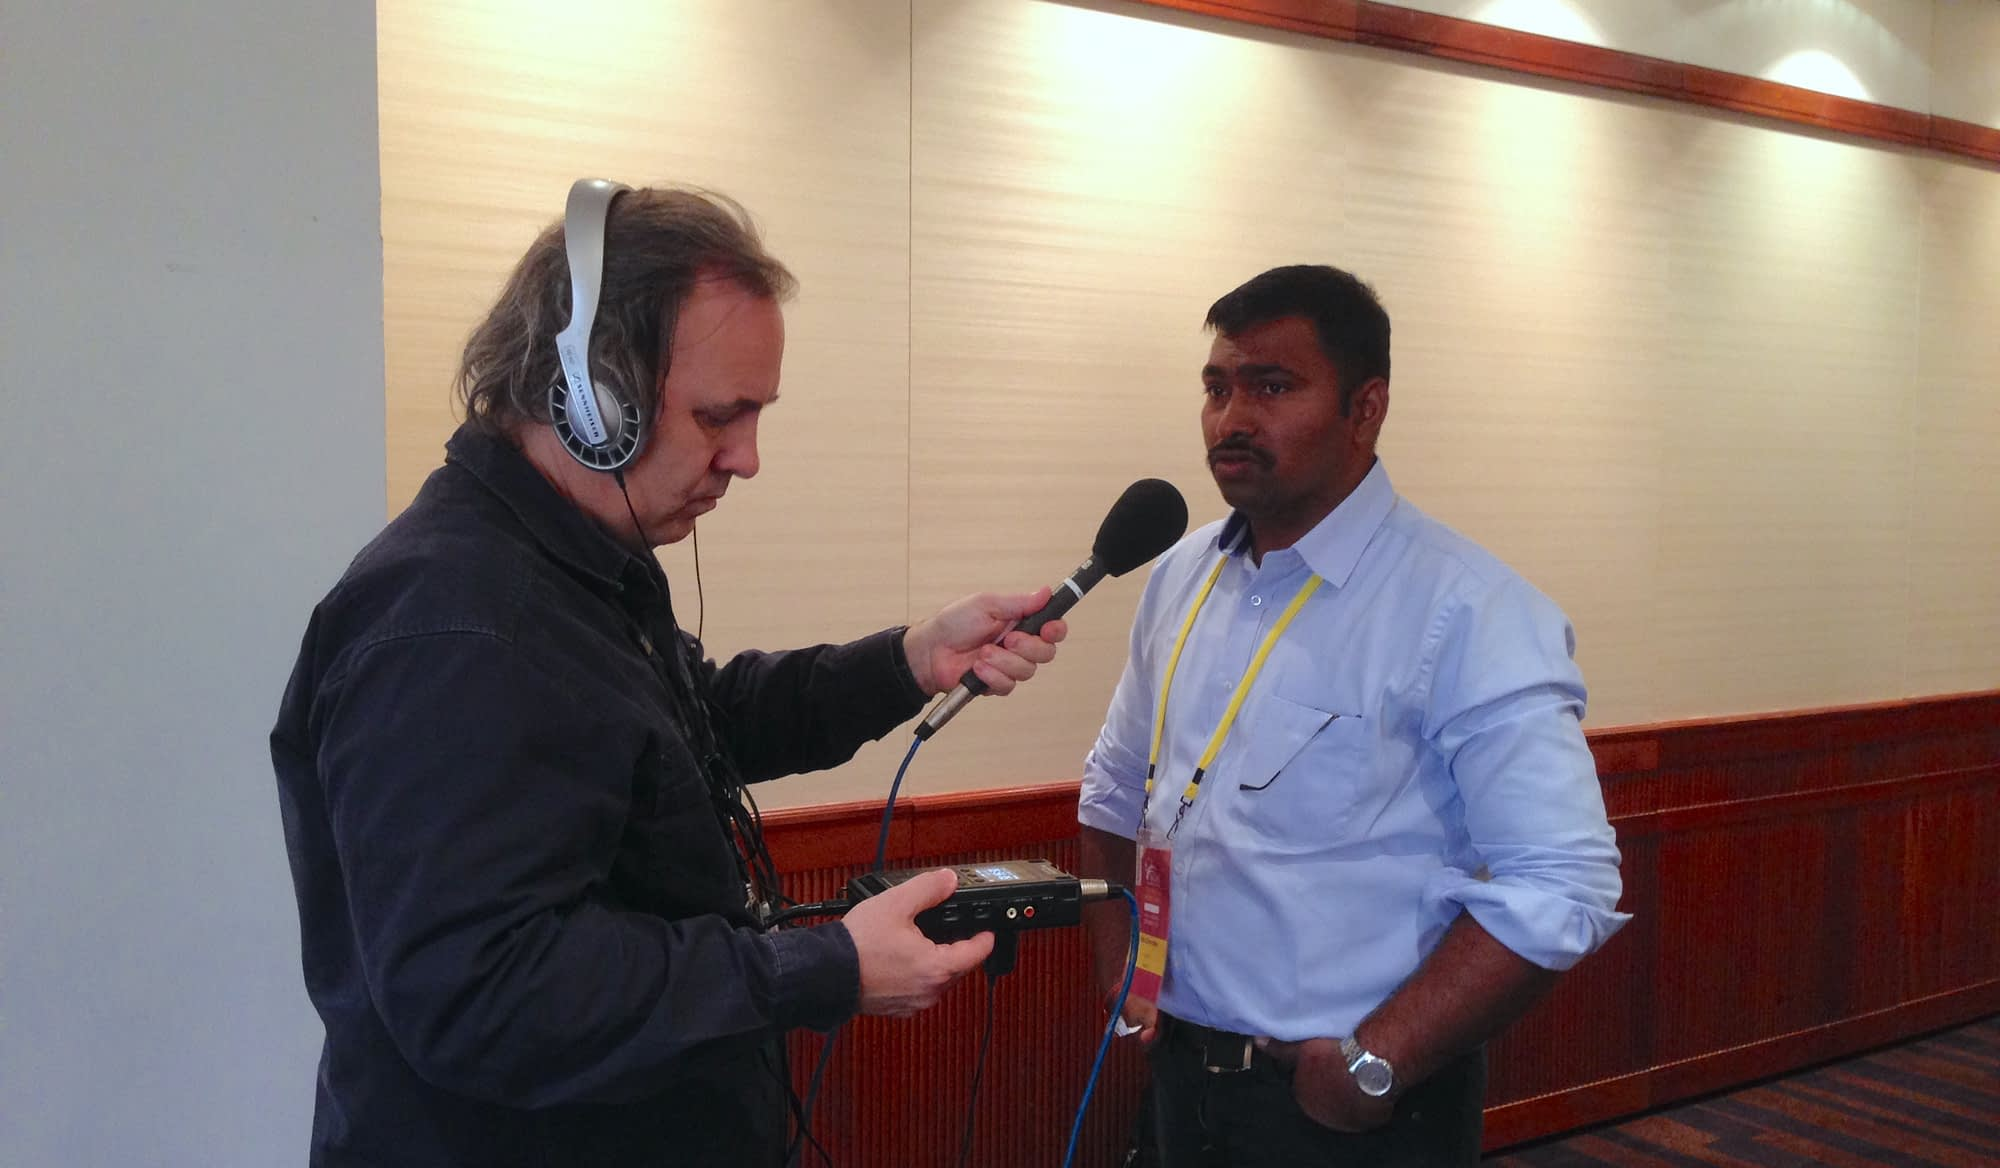 CIMMYT scientist Velu Govindan (right) is interviewed by Michael Condon of ABC Rural at the International Wheat Conference in Sydney, Australia, 2015. (Photo: Julie Mollins/CIMMYT)